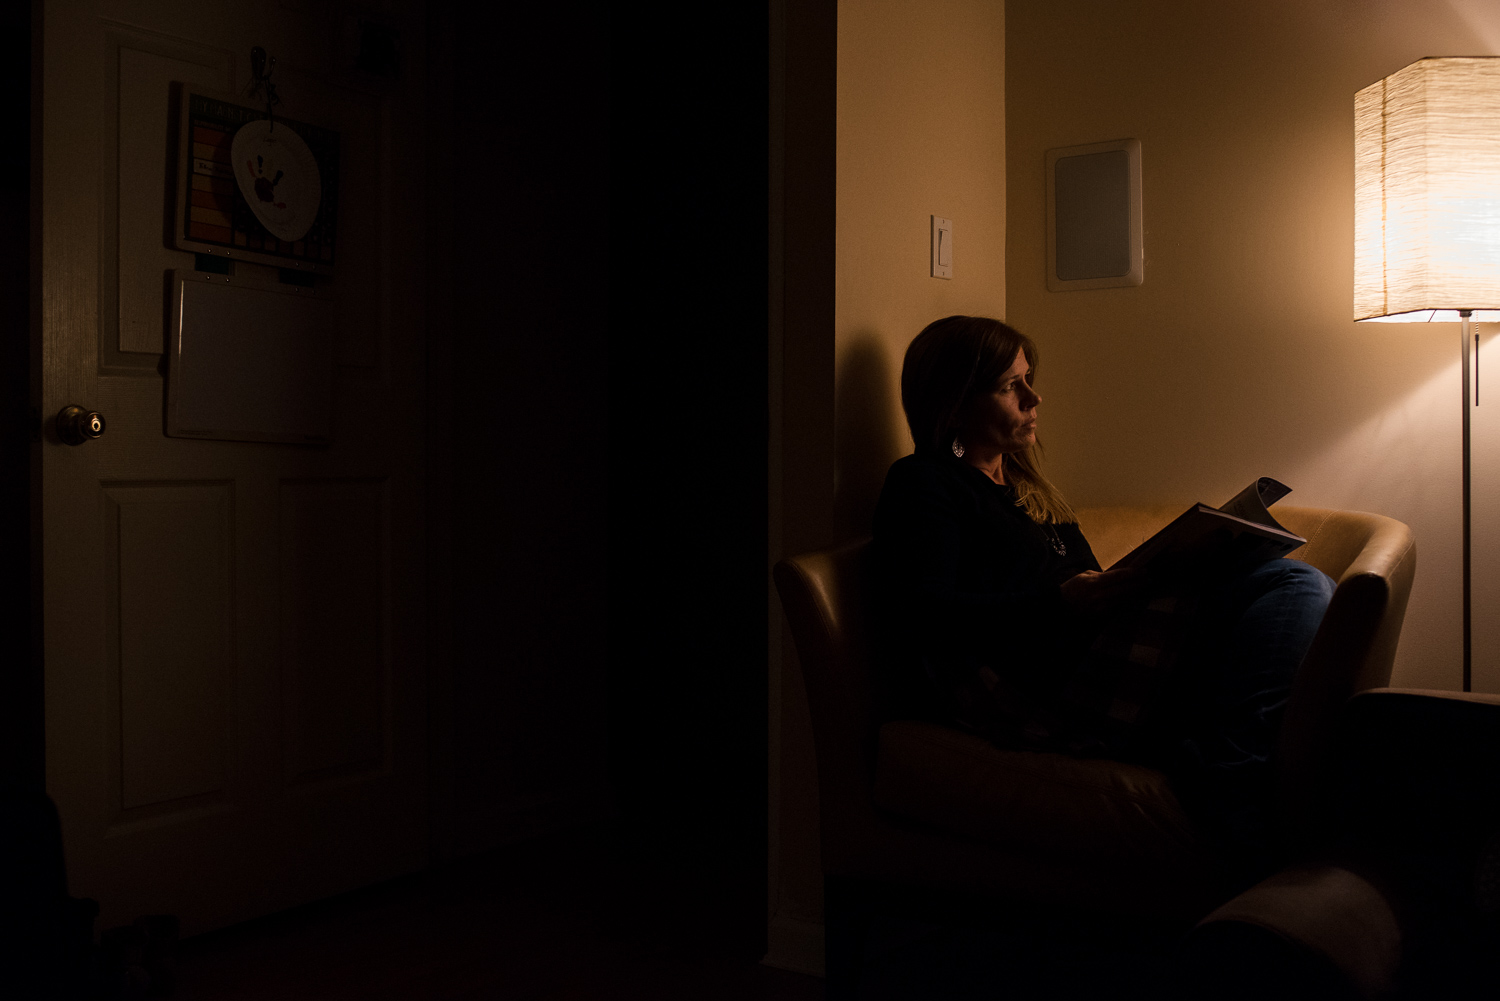 A woman looking at a magazine in low light.